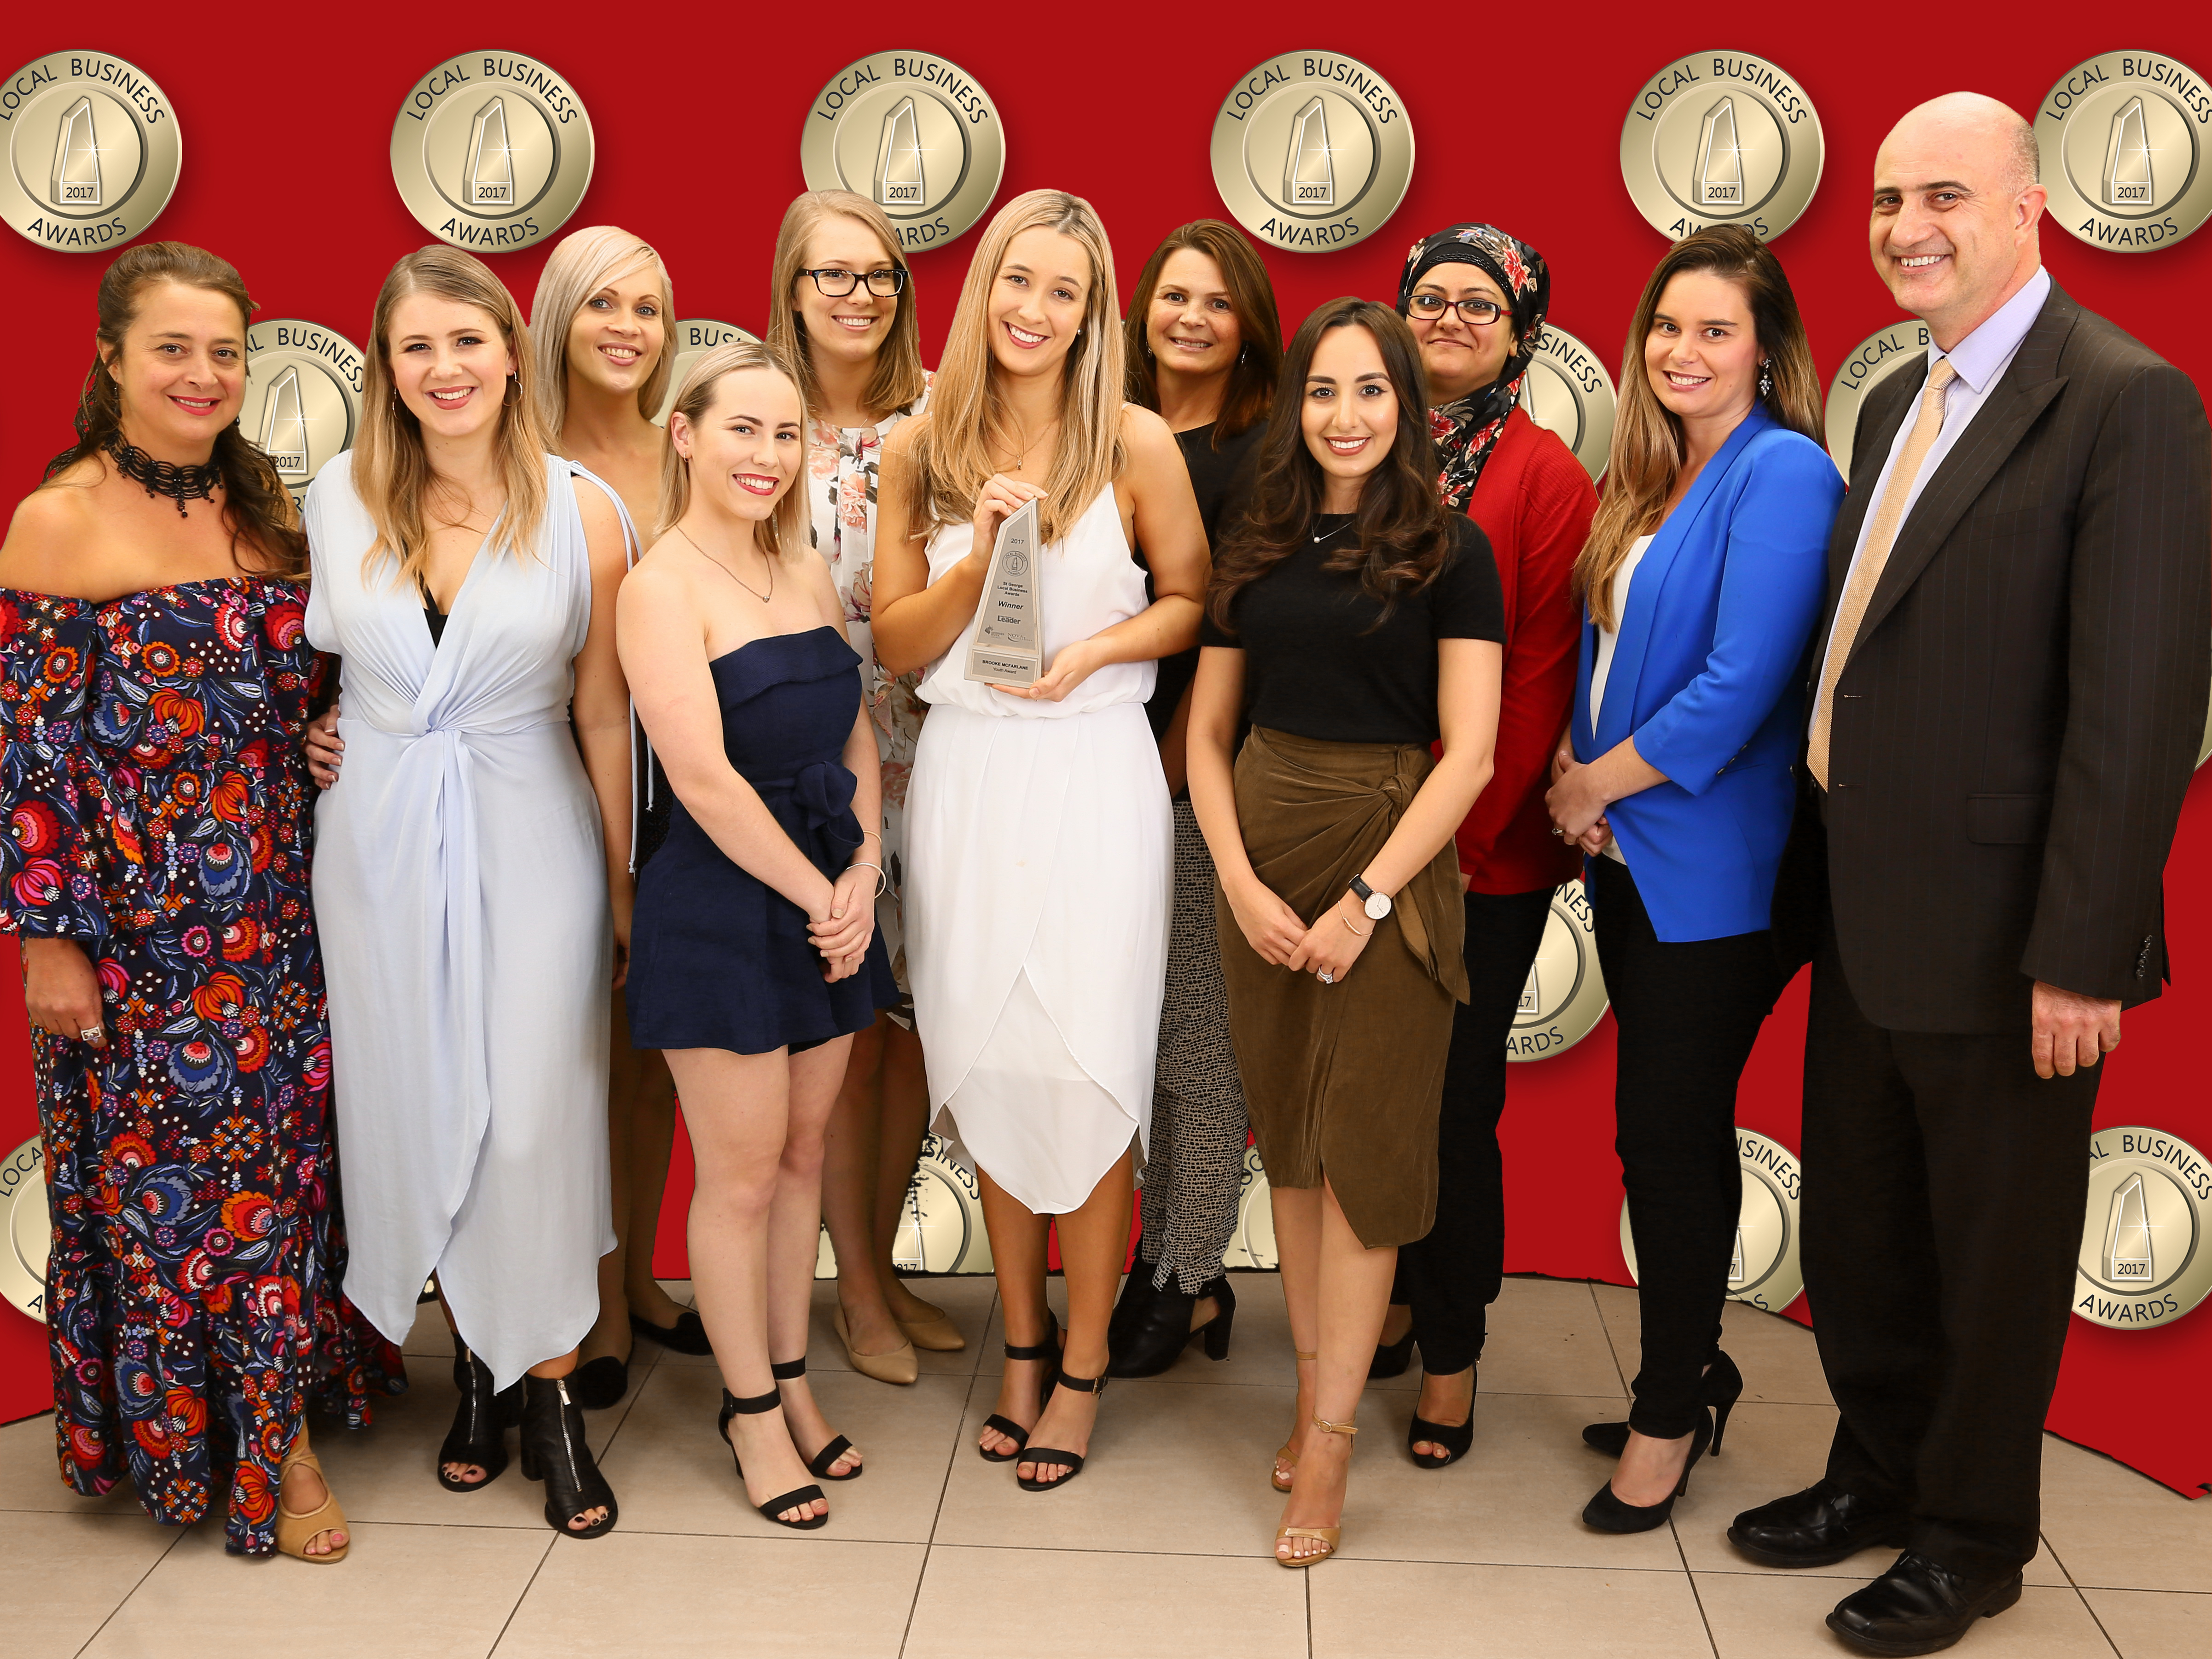 St George Business Awards 2017